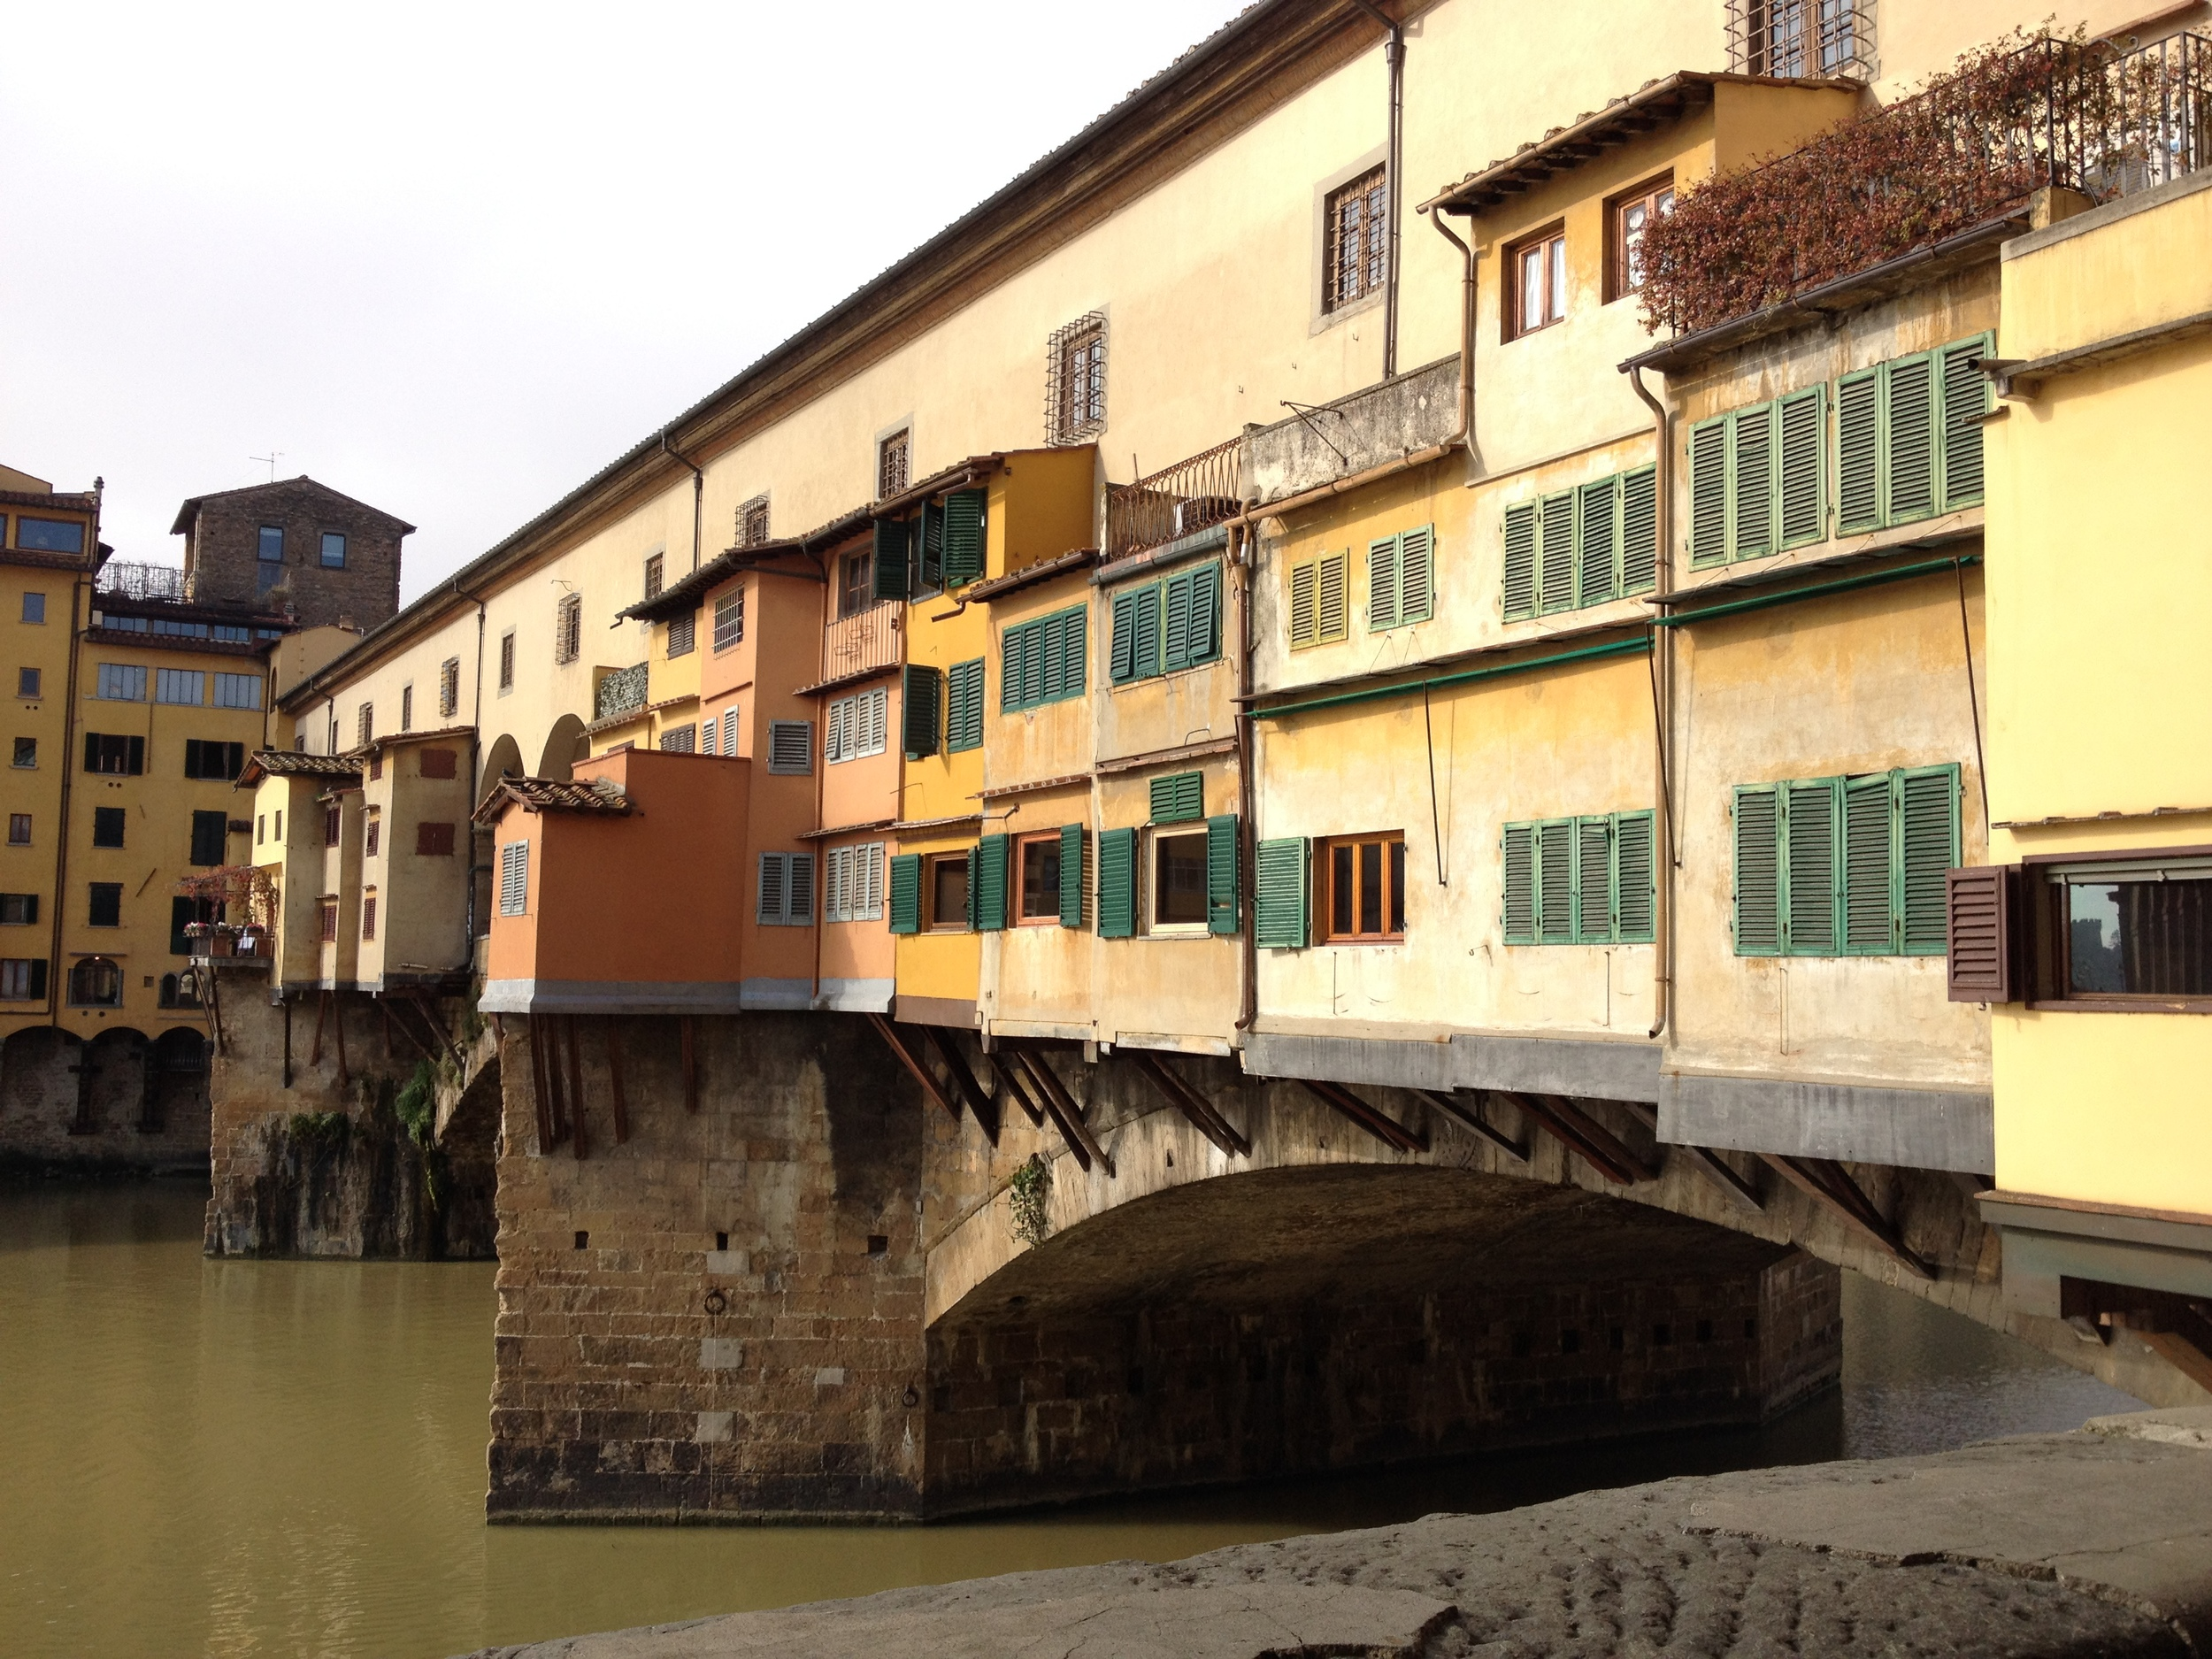 Close up view of the Ponte Vecchio Bridge.